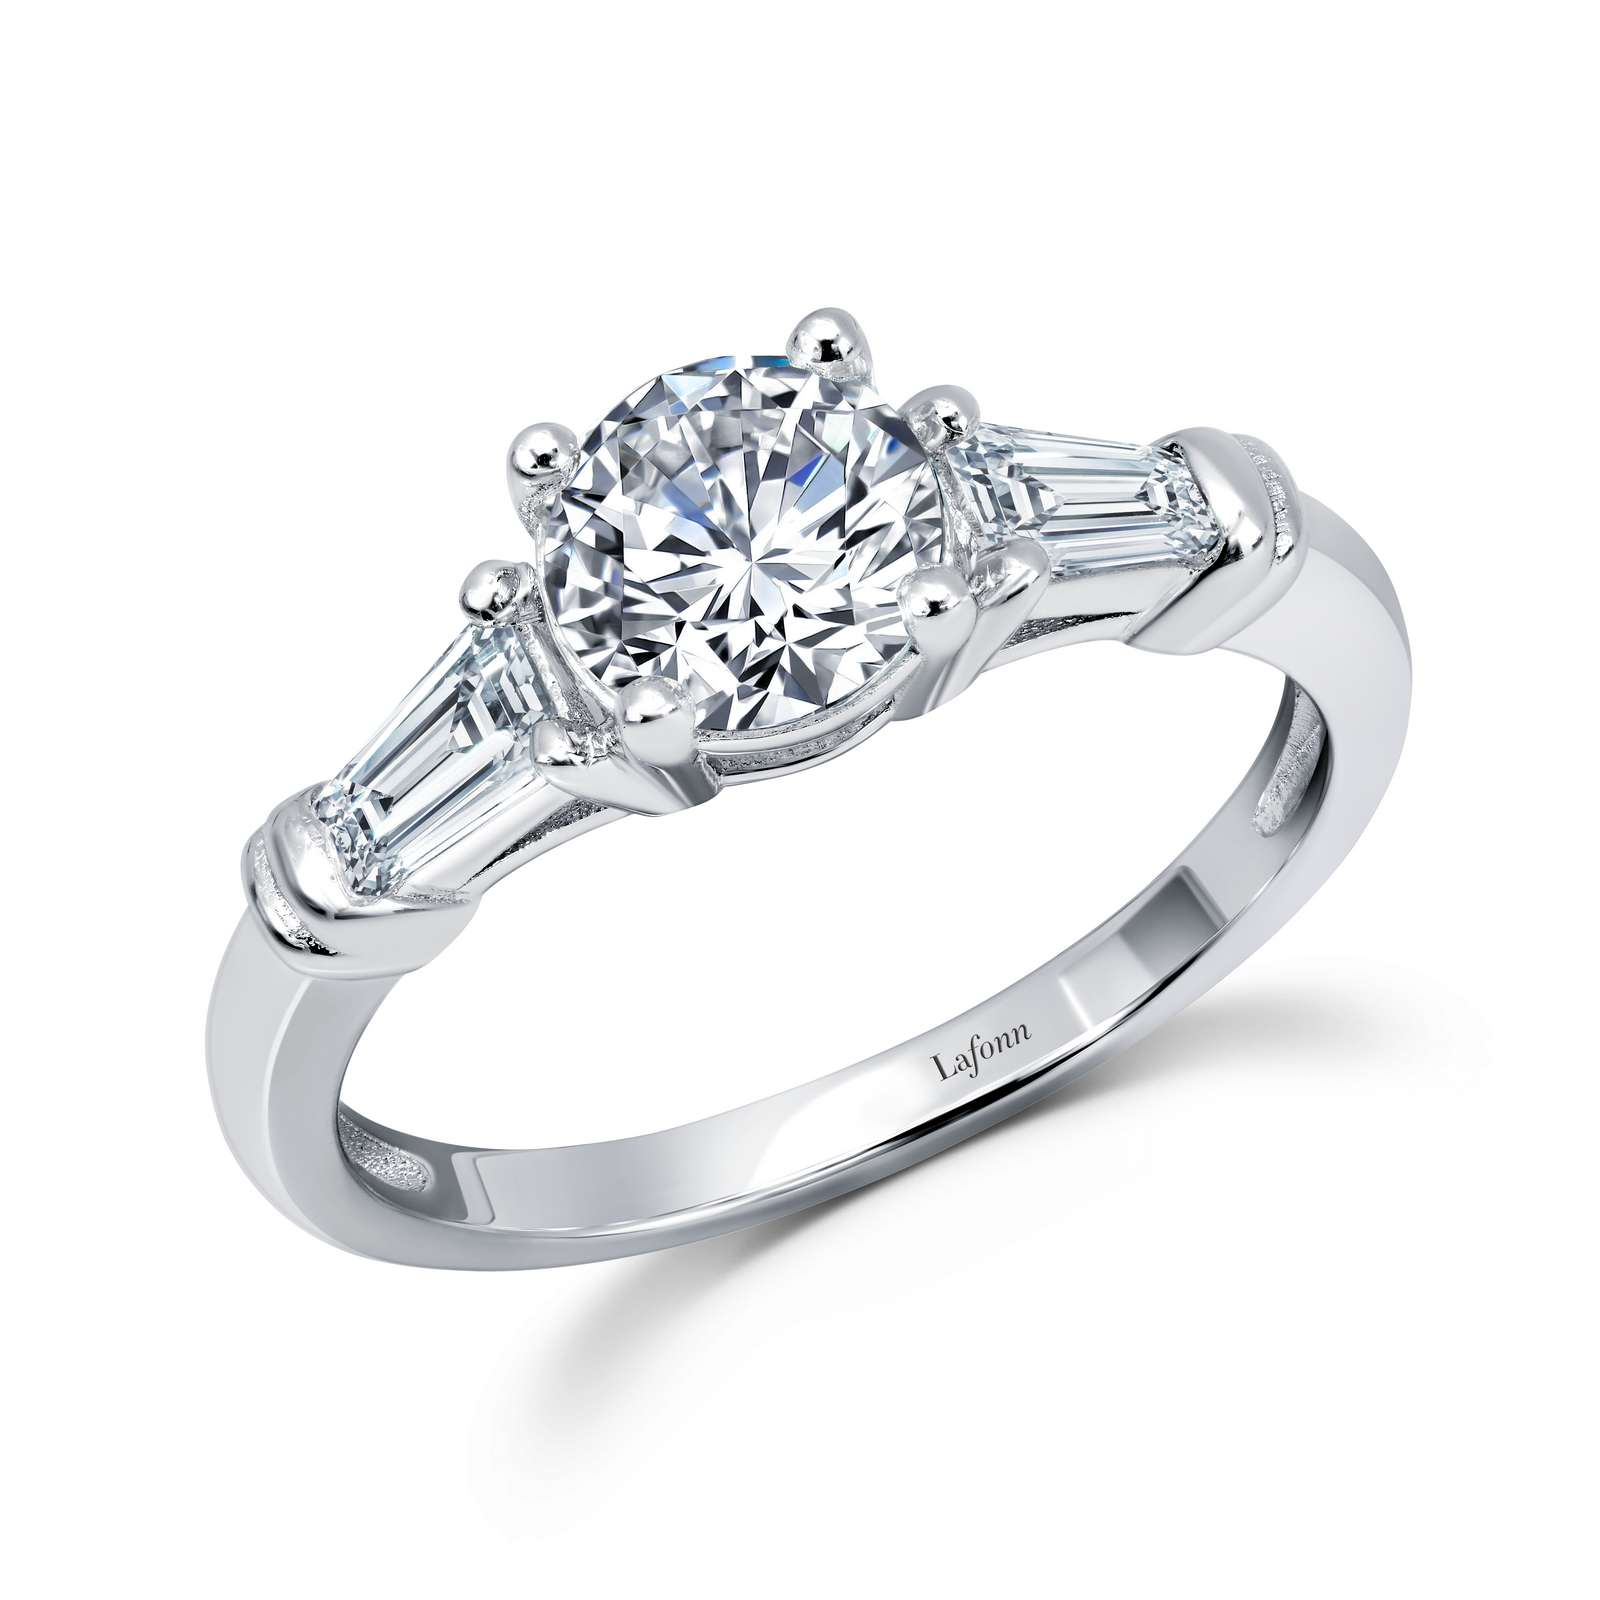 Shop our online store for the best priced rings, engagement rings and wedding bands. We carry a wide variety of rings in gold, silver and platinum with or without diamonds and gemstones. See our online store or stop into our showroom in Jensen Beach, Florida.